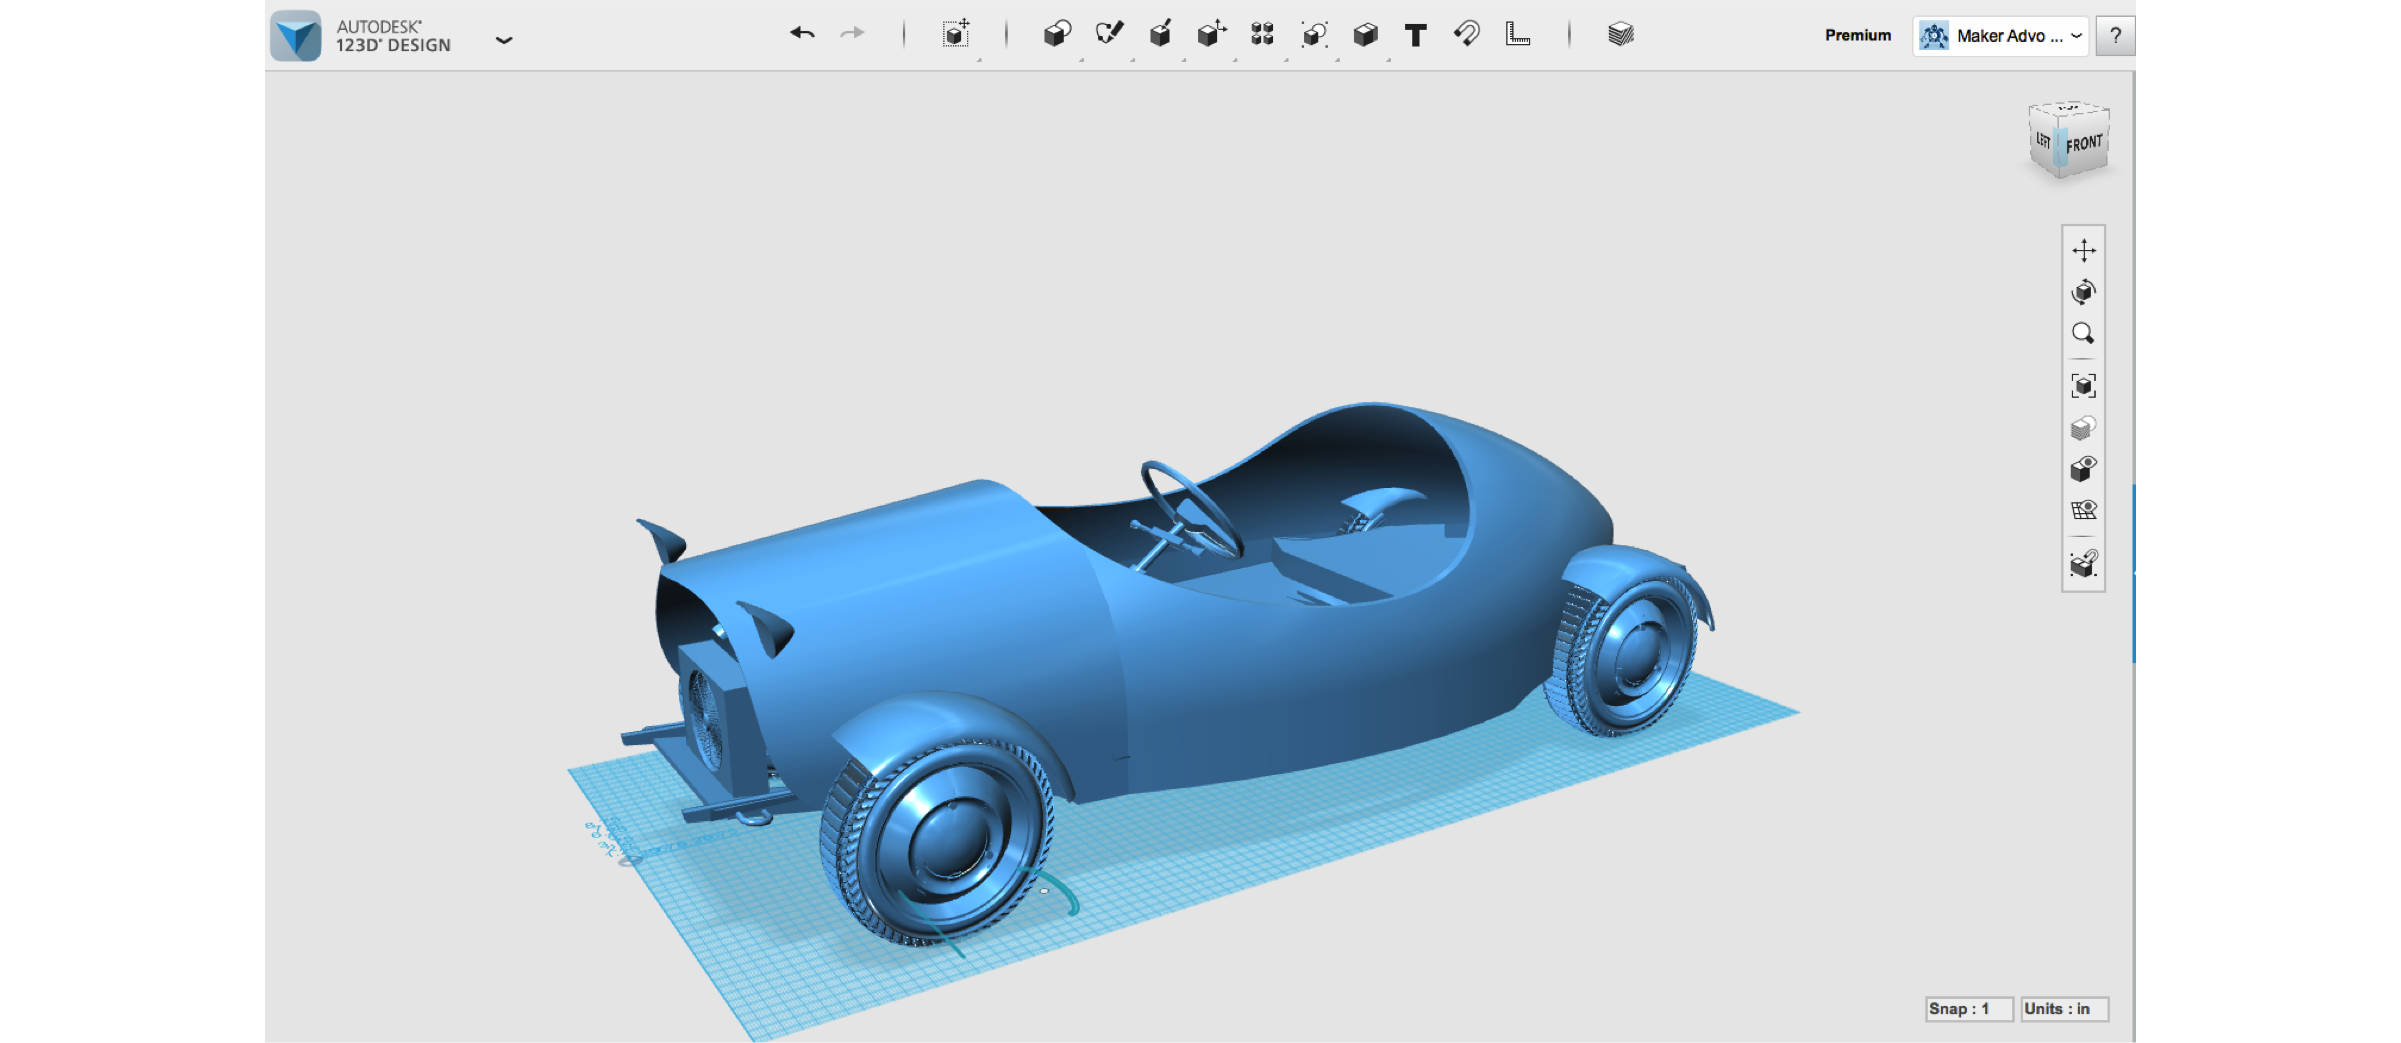 How to Make a Car Body with Autodesk 123D